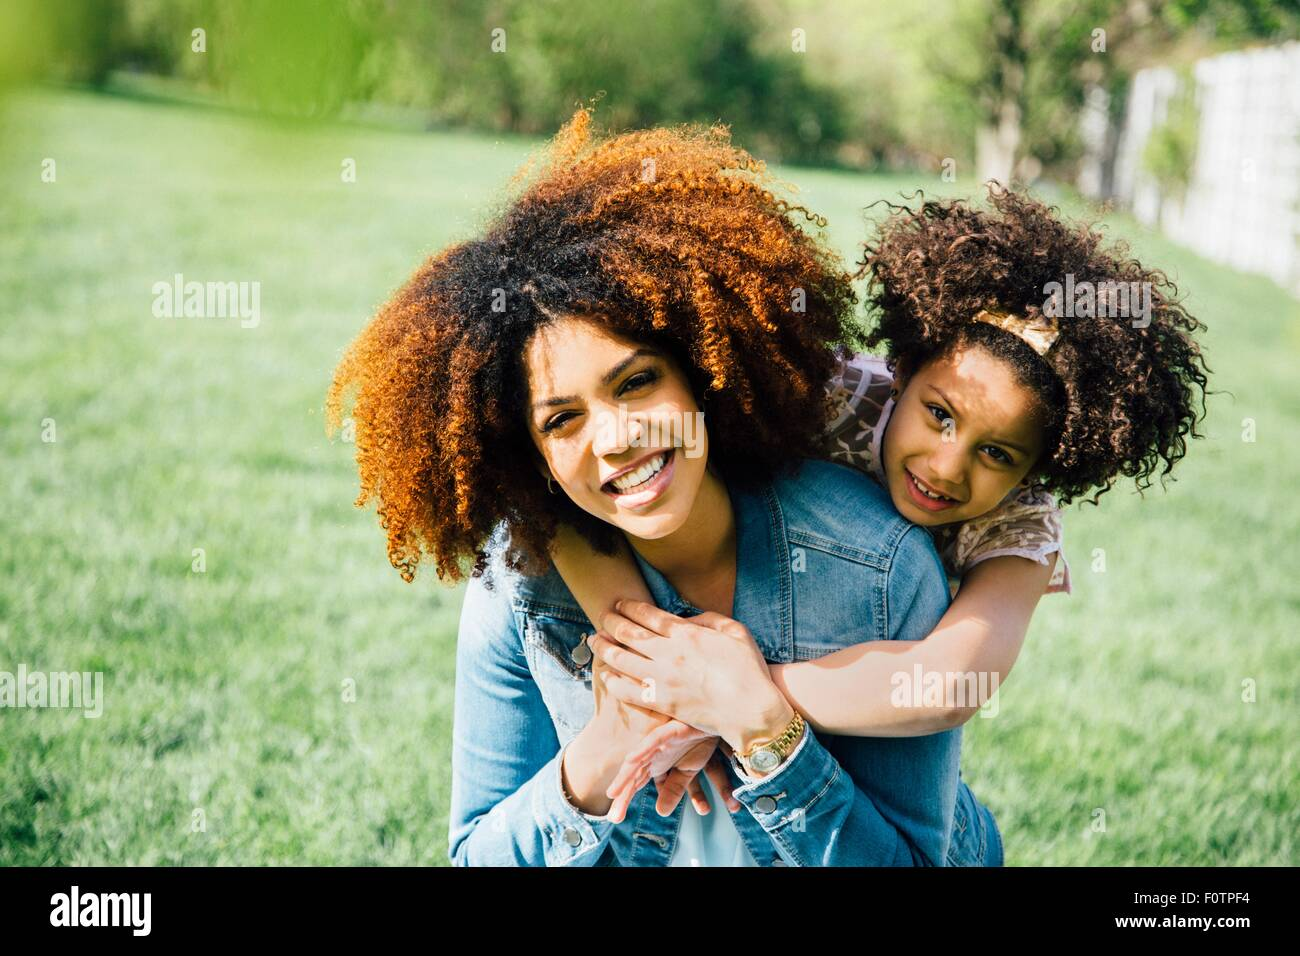 Daughter standing behind mother, arms around neck, smiling - Stock Image